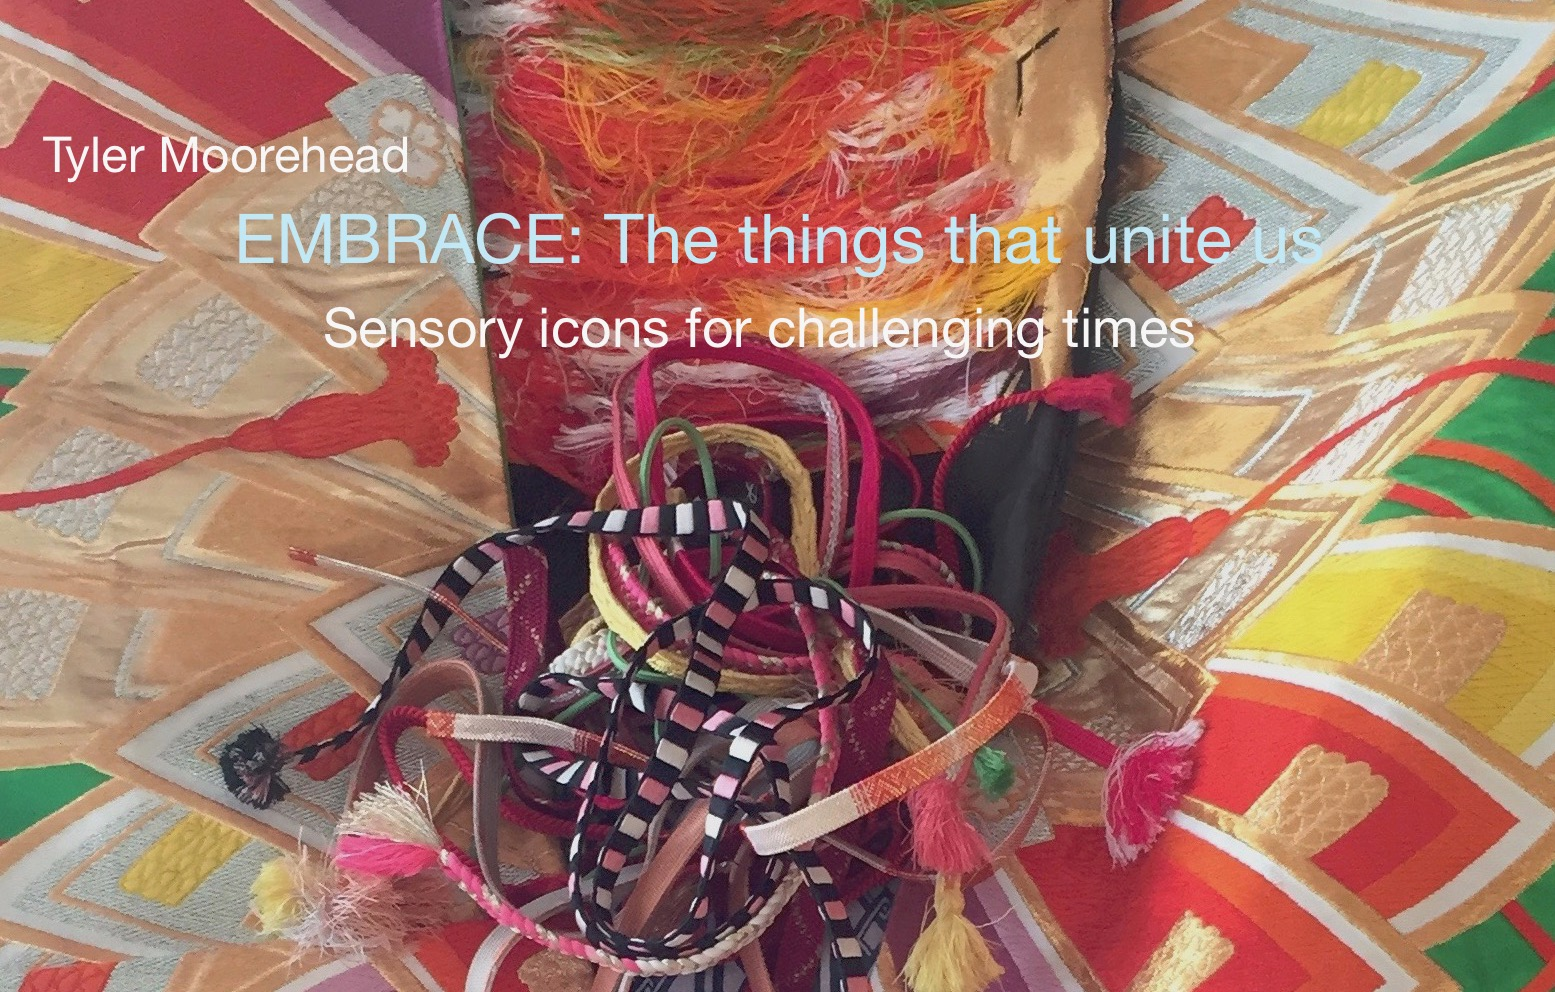 EMBRACE: The things that unite us